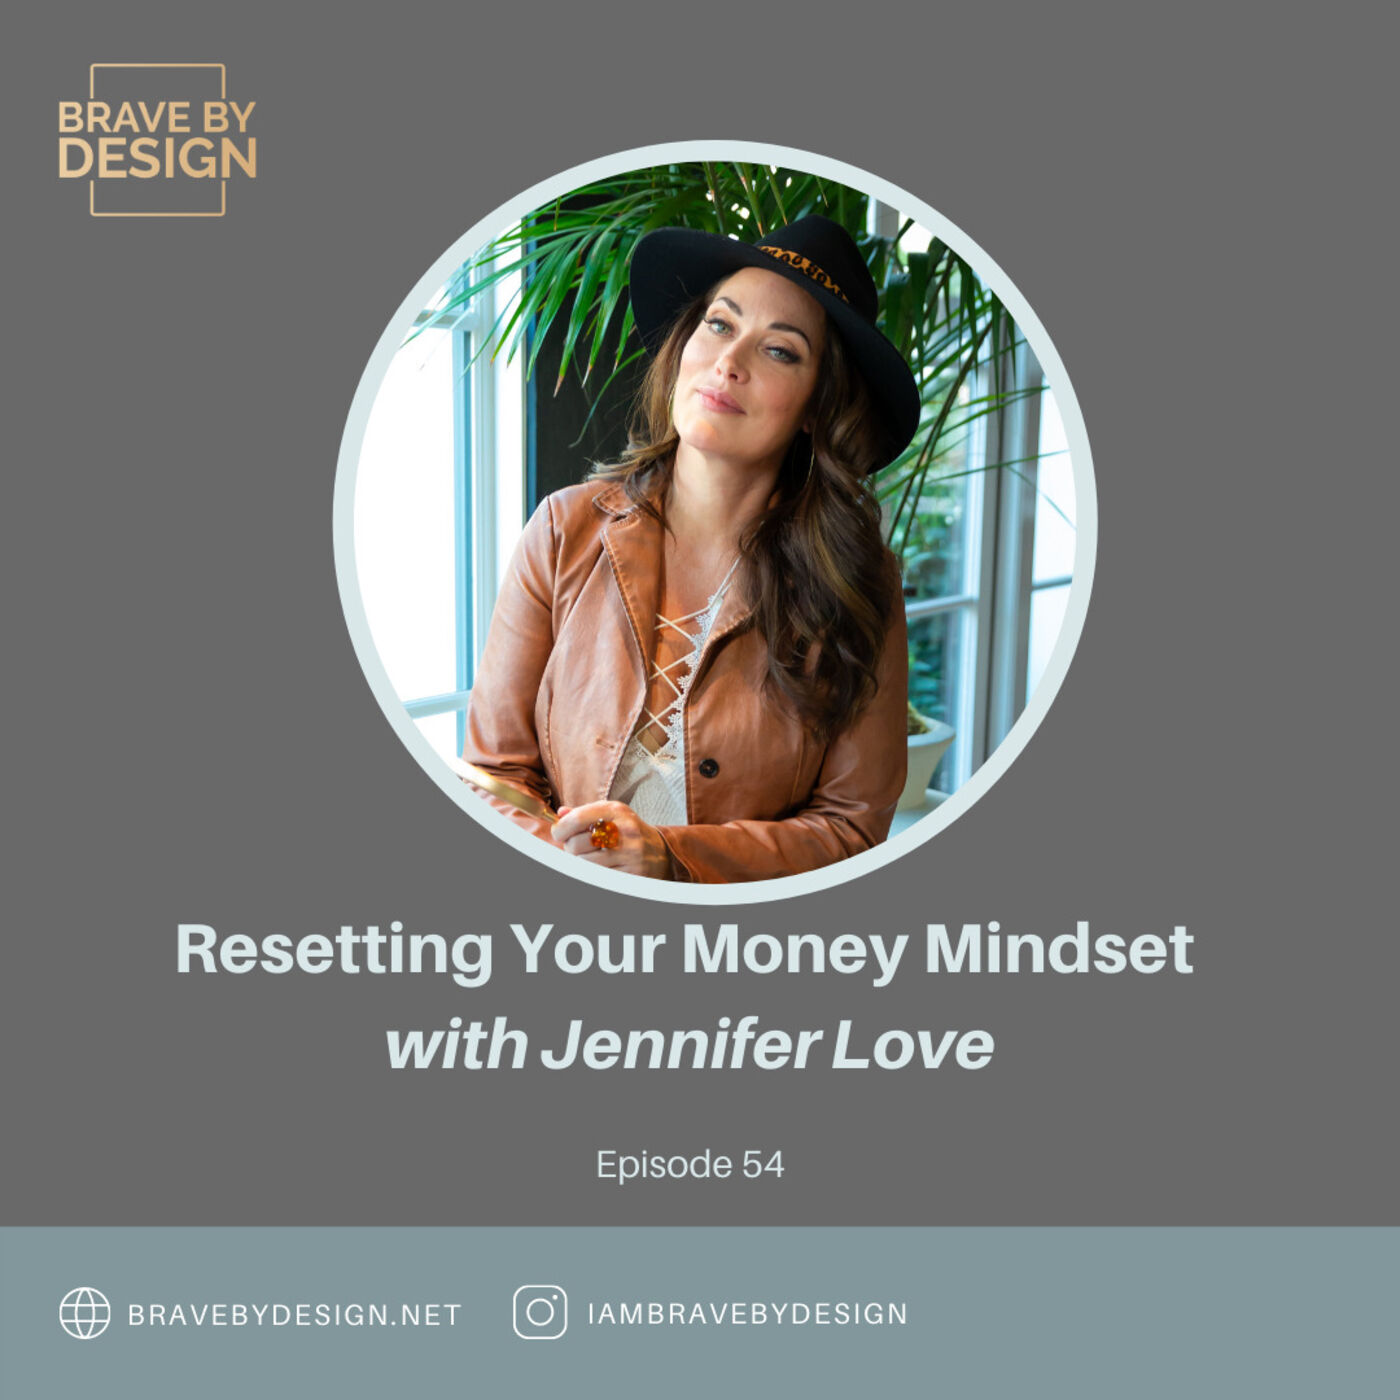 Resetting your Money Mindset with Jennifer Love